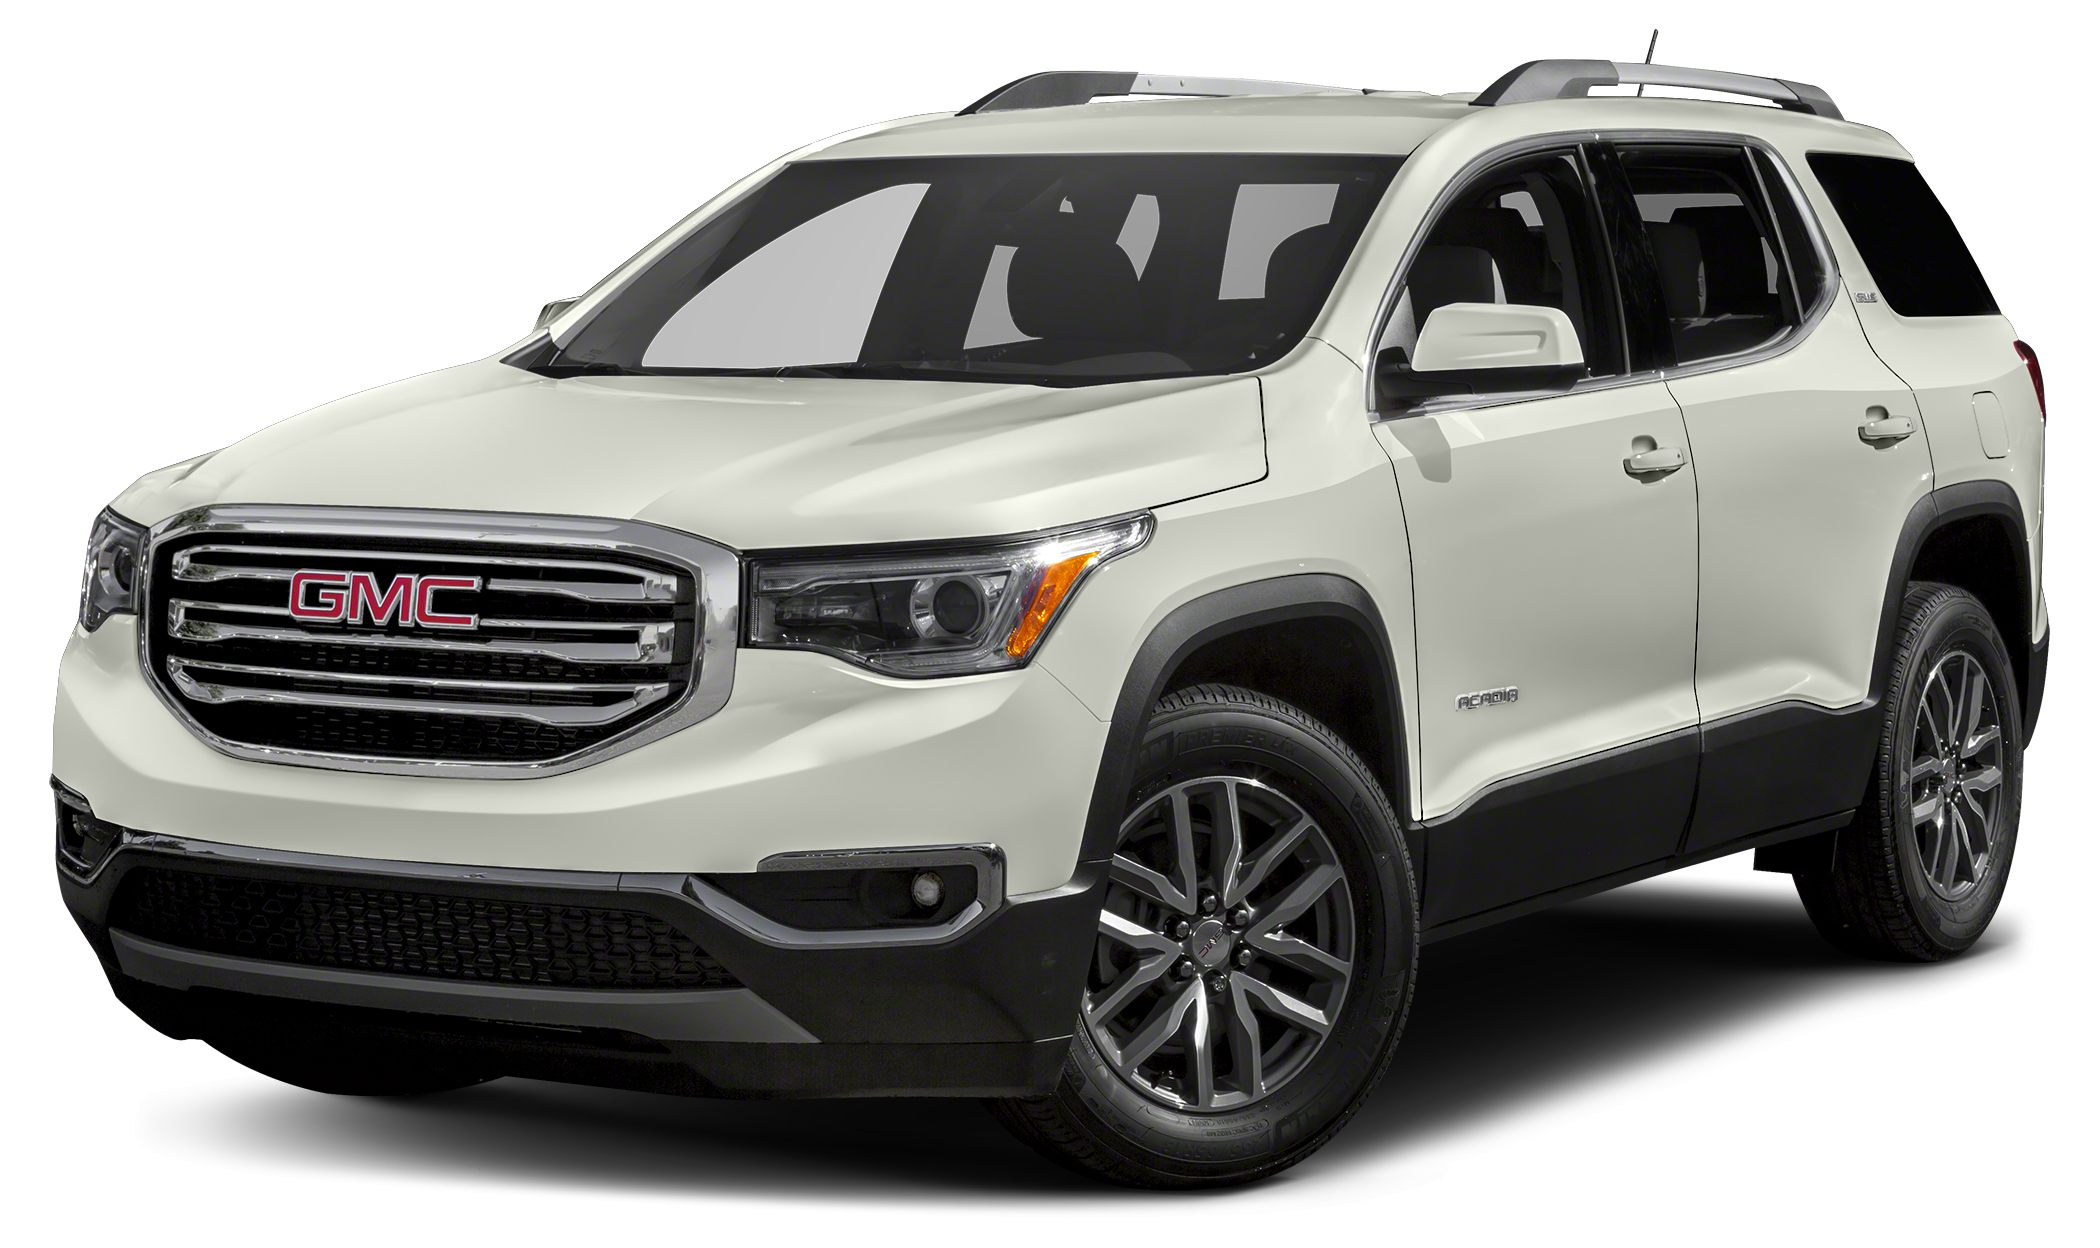 2017 GMC Acadia SLT-2 The all-new 2017 GMC Acadia mid-size SUV is designed to make a lasting impre